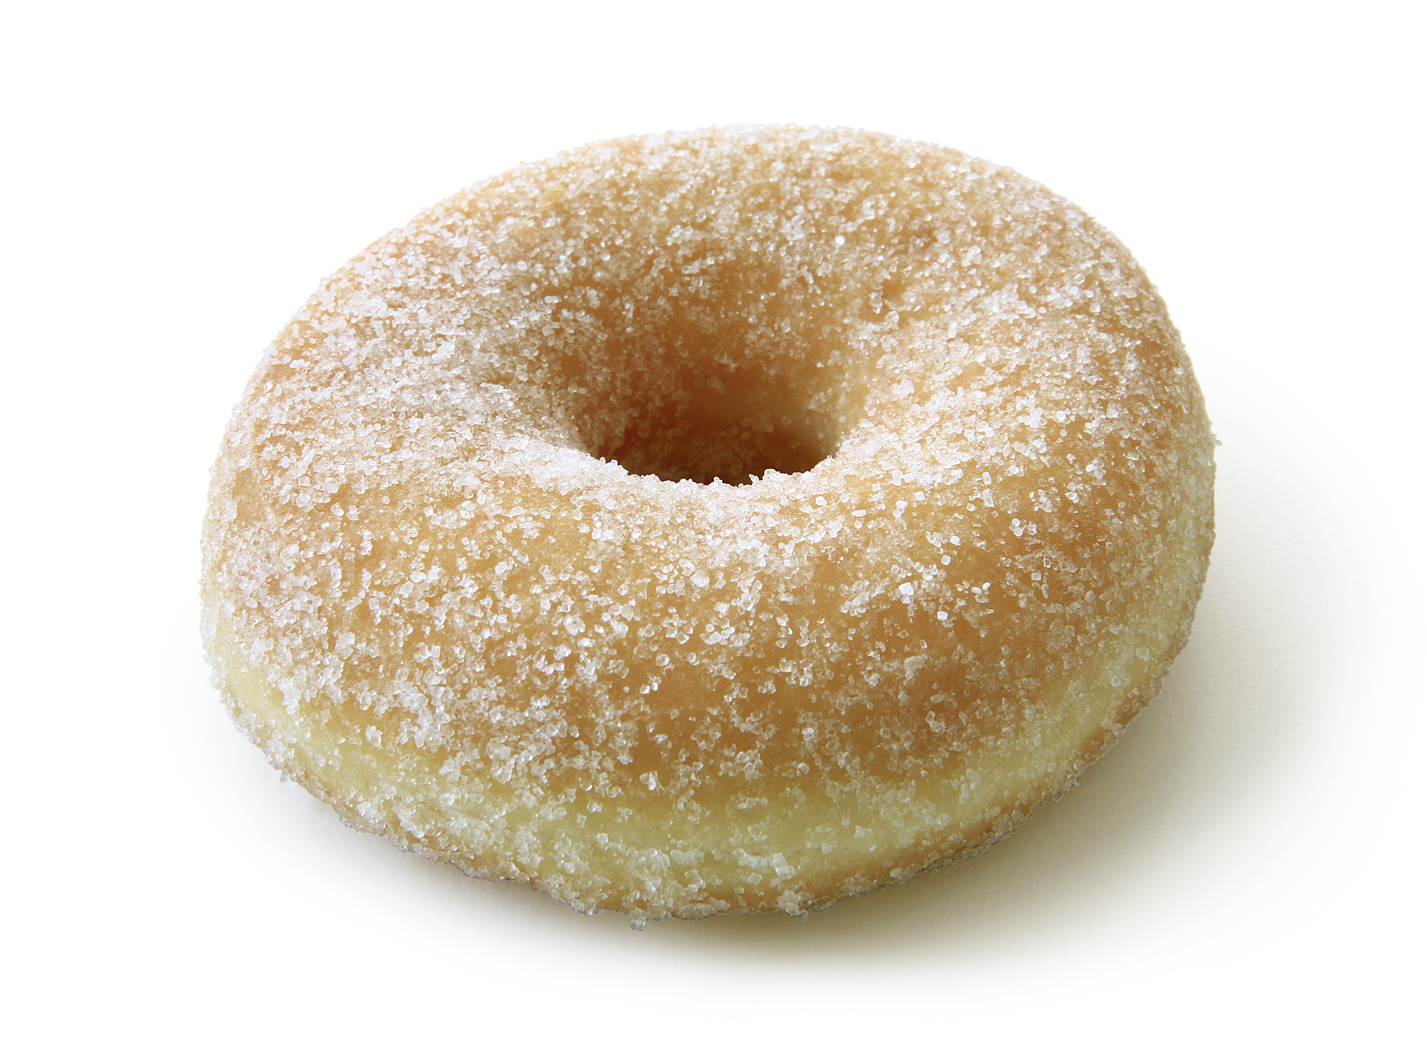 Sugared Donut - Fried yeast dough sprinkled with 10% sugar/ thaw only/ diameter: 9cm